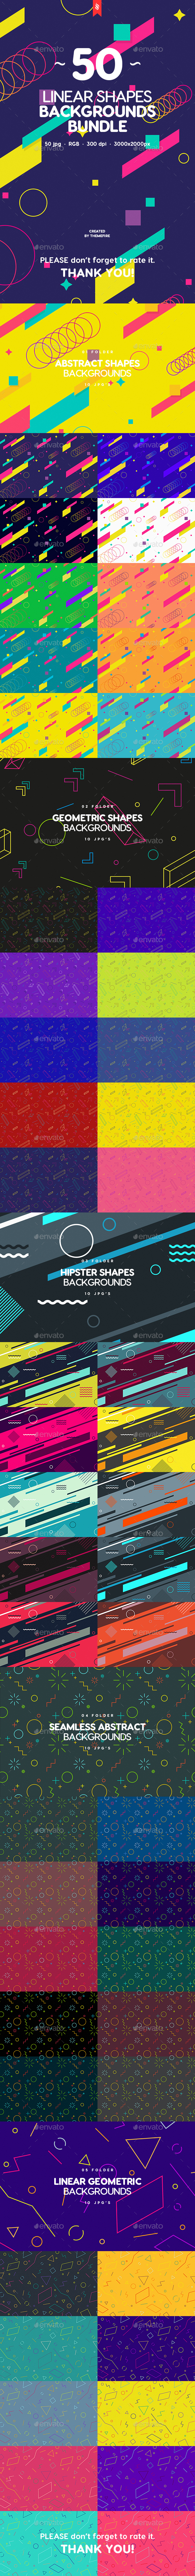 50 Abstract Linear Shapes Backgrounds Bundle - Abstract Backgrounds